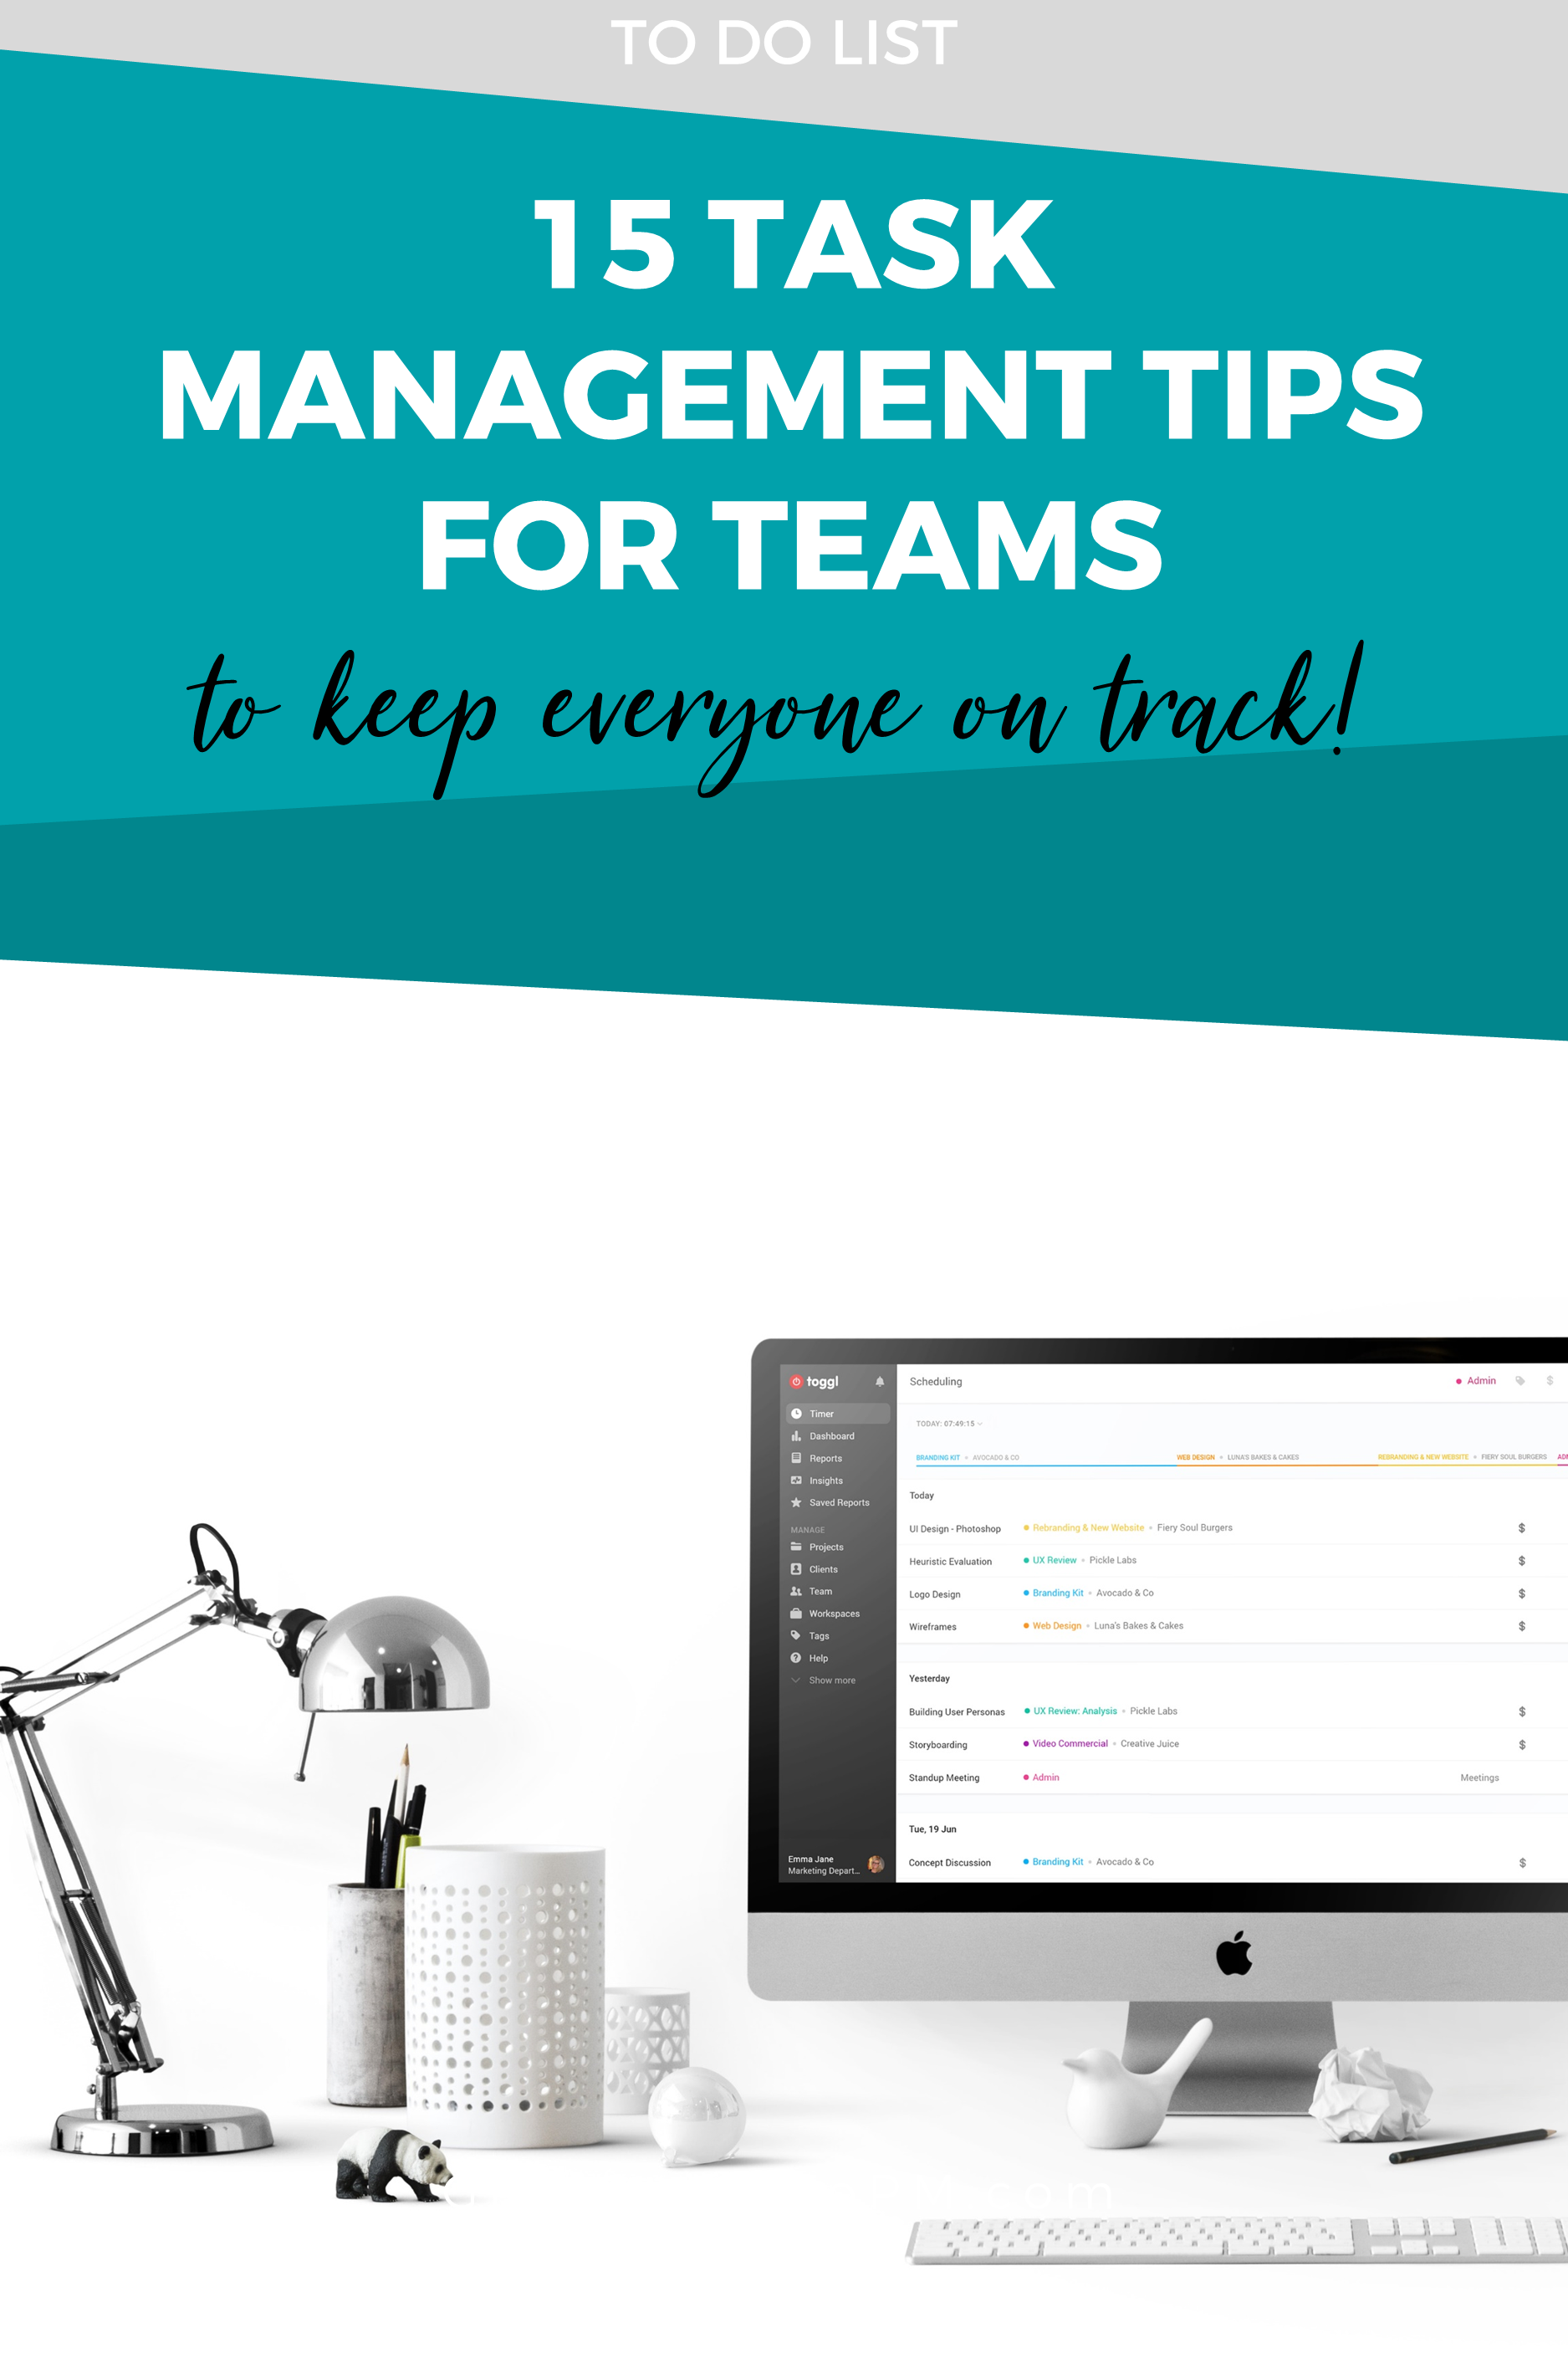 Task Management For Teams 15 Tips For Staying On Track Girl S Guide To Project Management In 2021 Task Management Task Management App Management